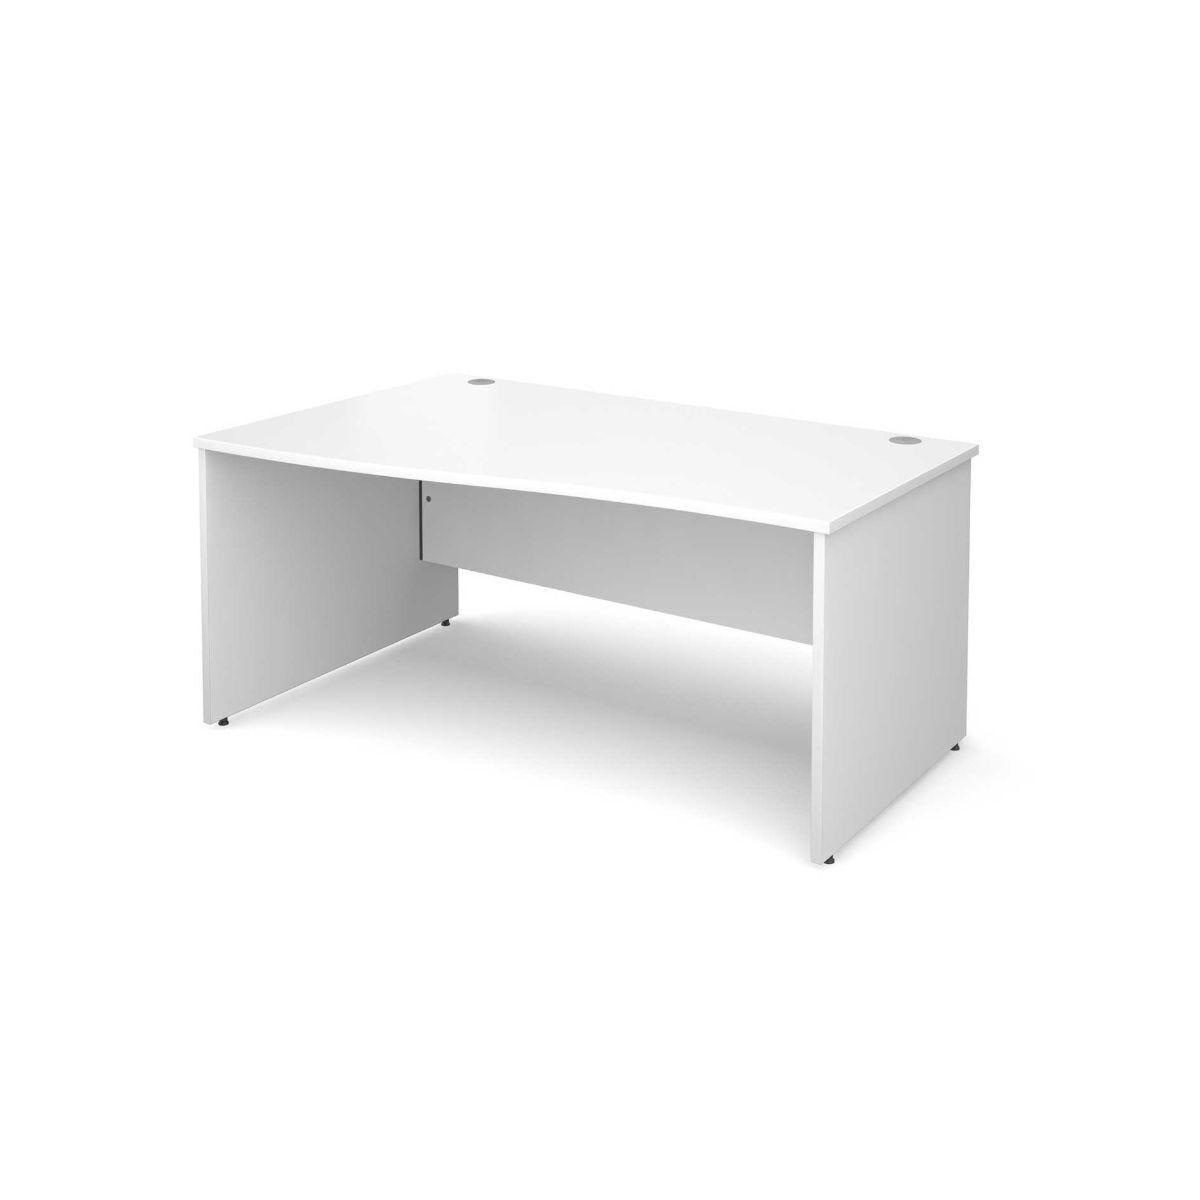 Maestro 25 Left Hand Wave 1600 Desk with End Panel White